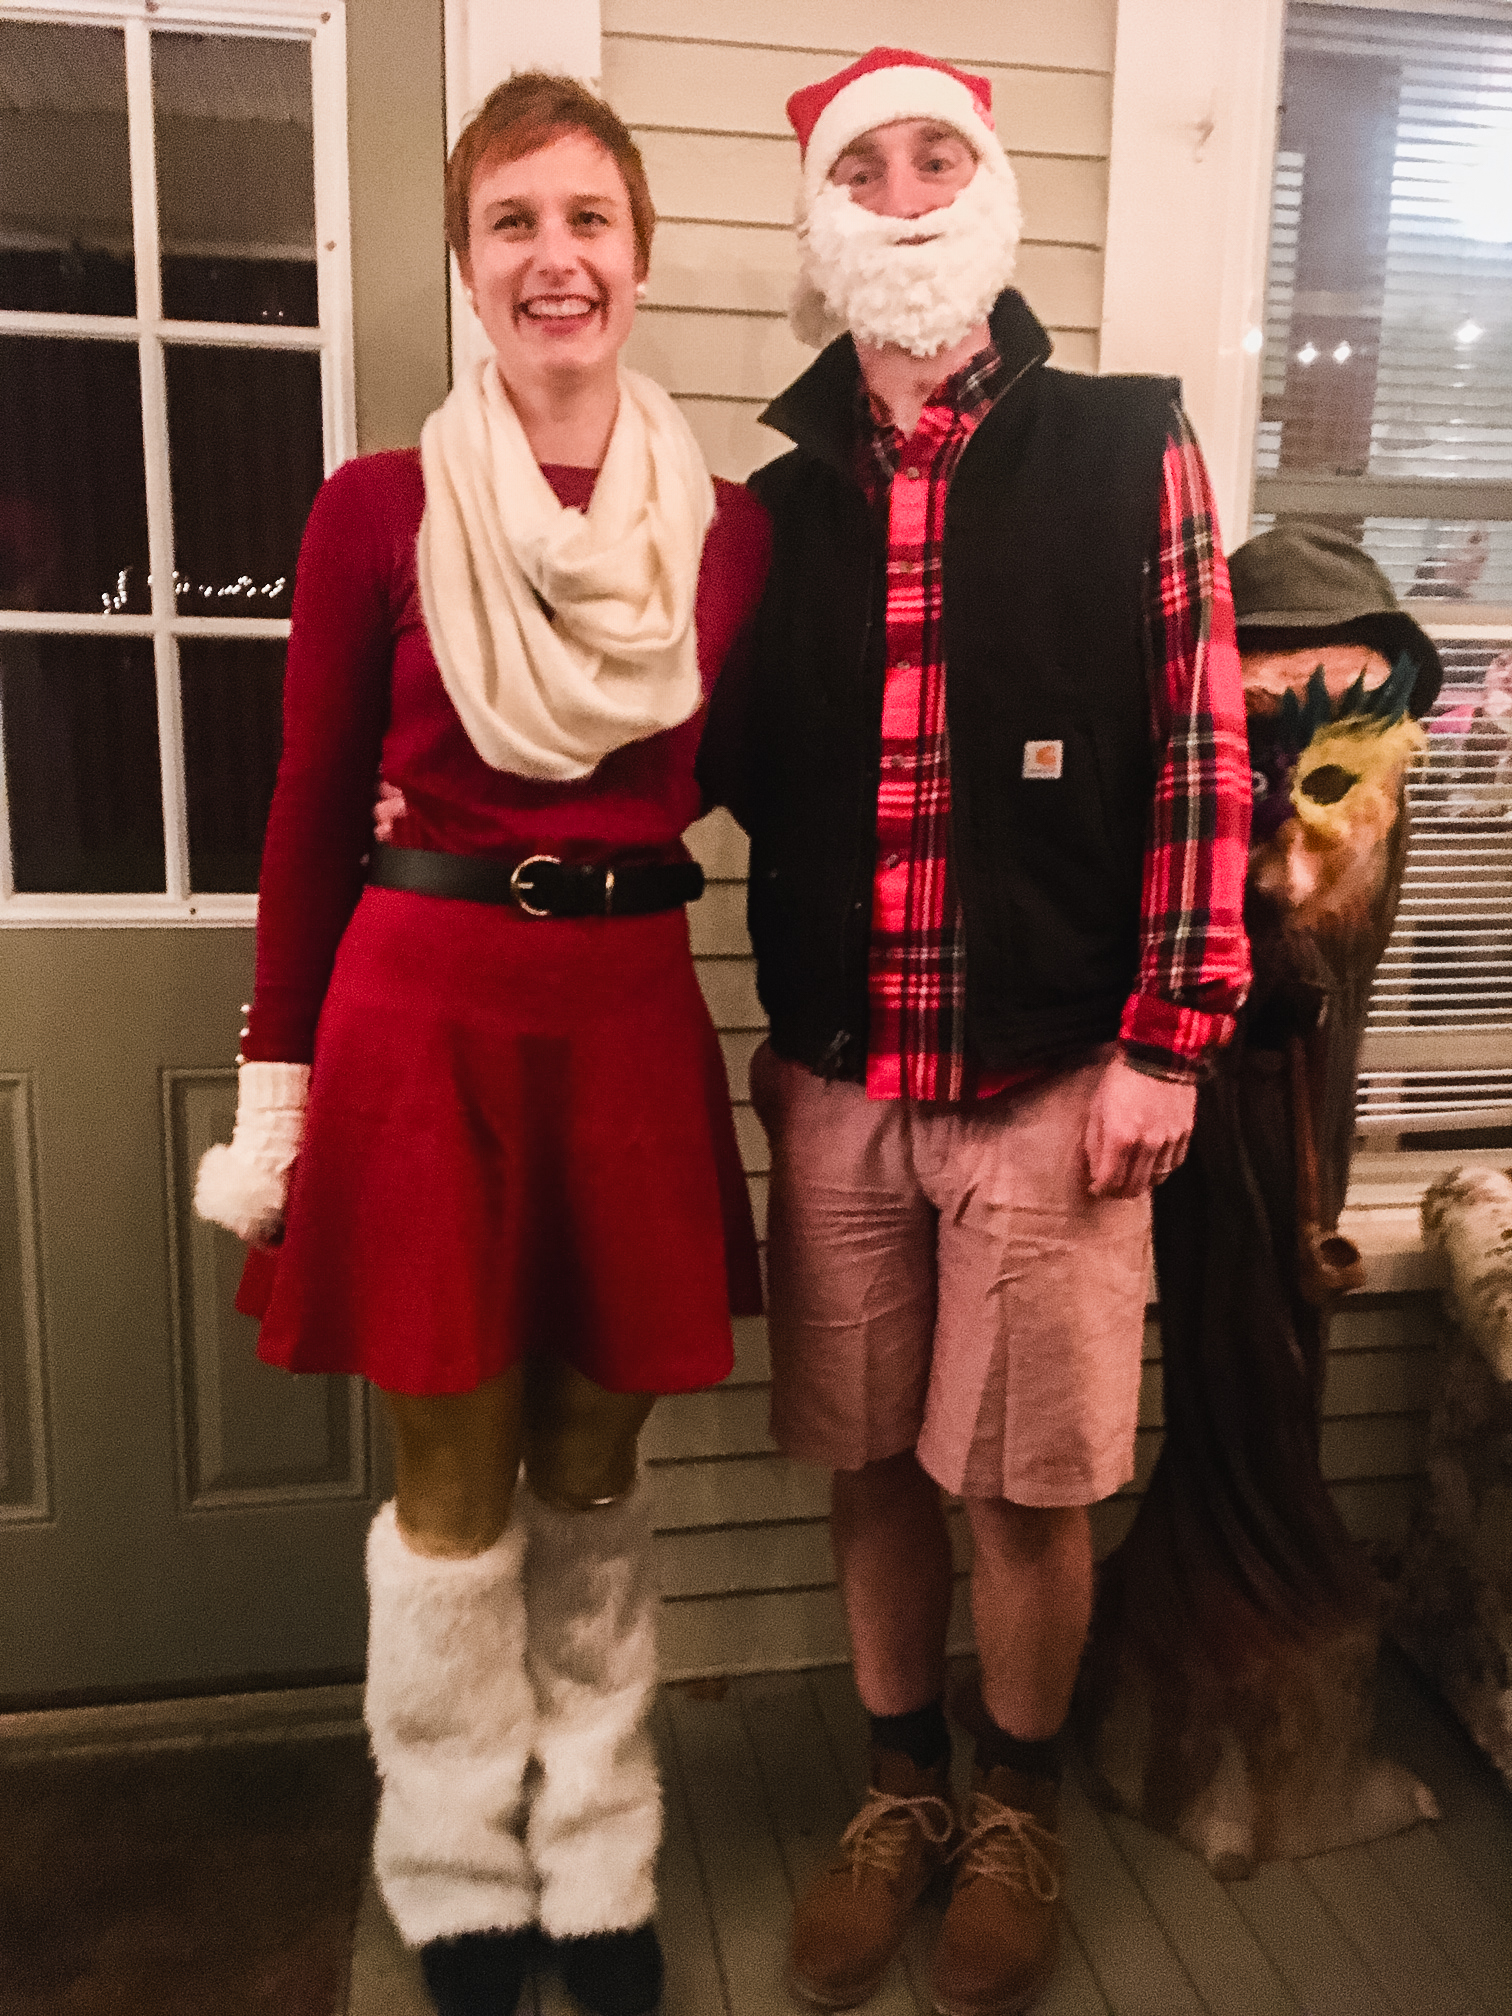 Merry Christmas from us! Husband and I have worn this same Halloween costume for 3 years in a row. 🎃🎅🏻 Plus, it can be worn at Christmas too! Now that's a minimalist's dream. 🤣 Hope you're all enjoying a lovely holiday season.